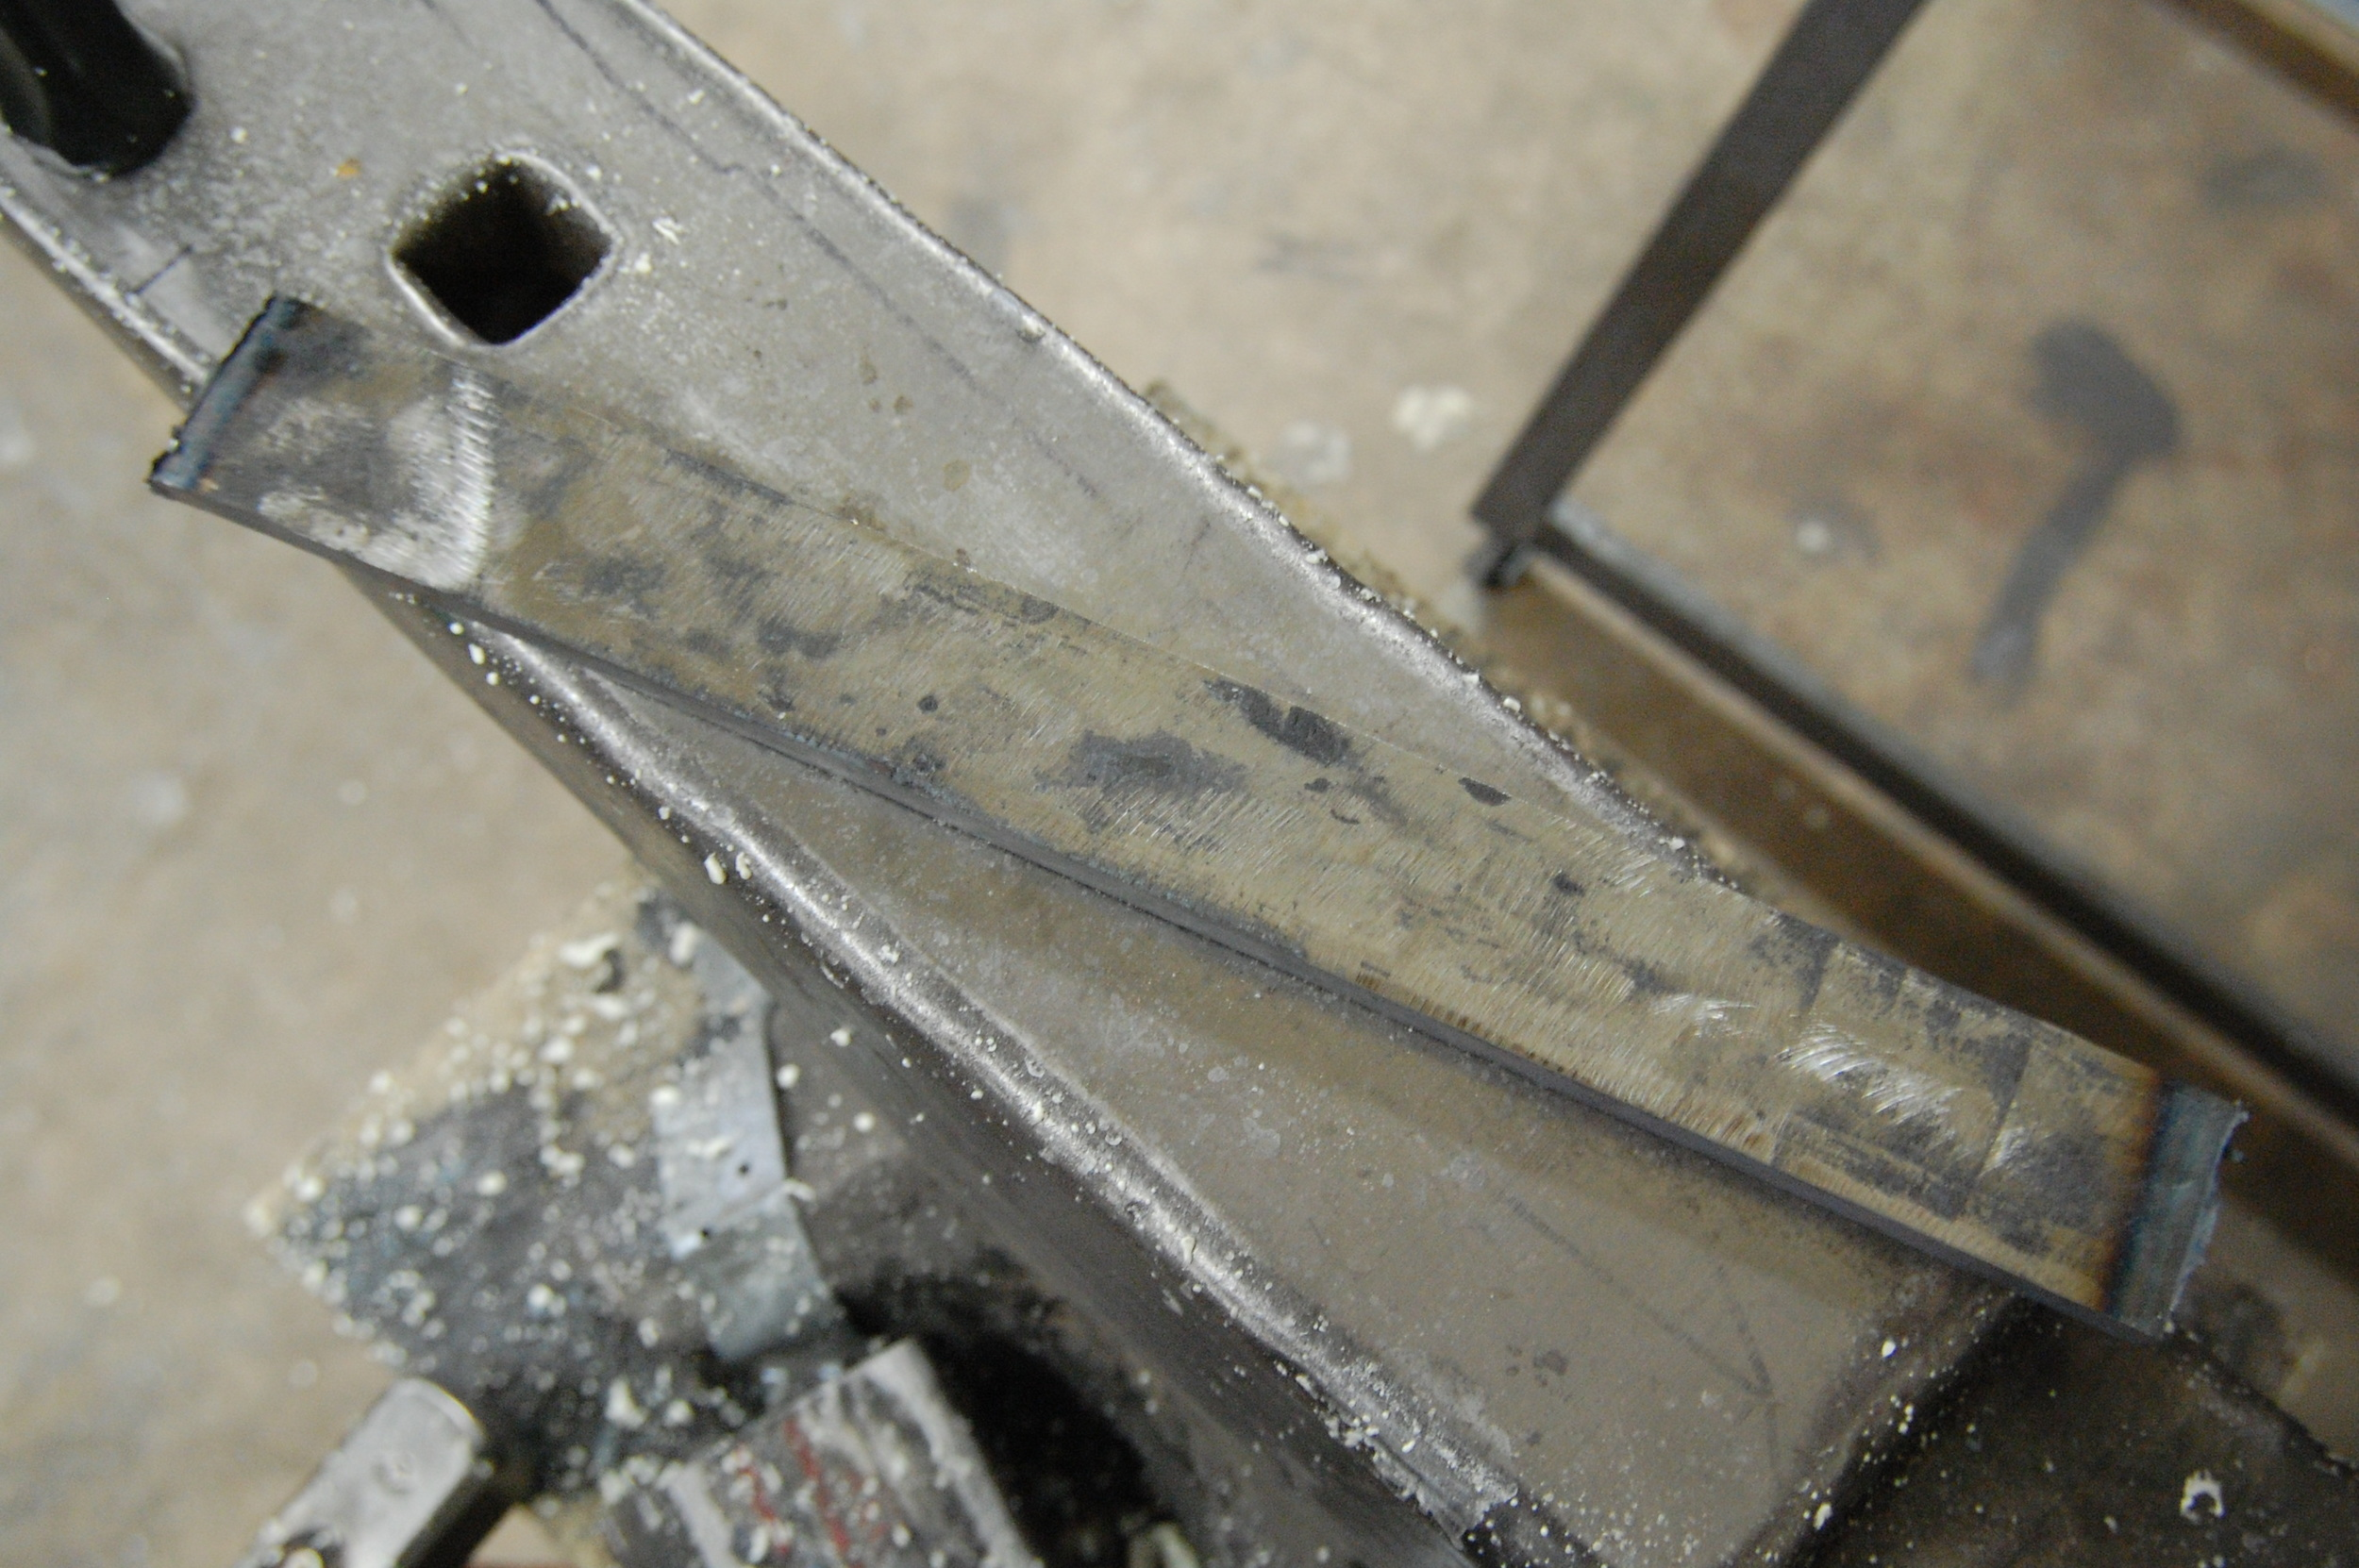 A billet that I forge welded and is currently at 88 layers of 52100 and 15N20.